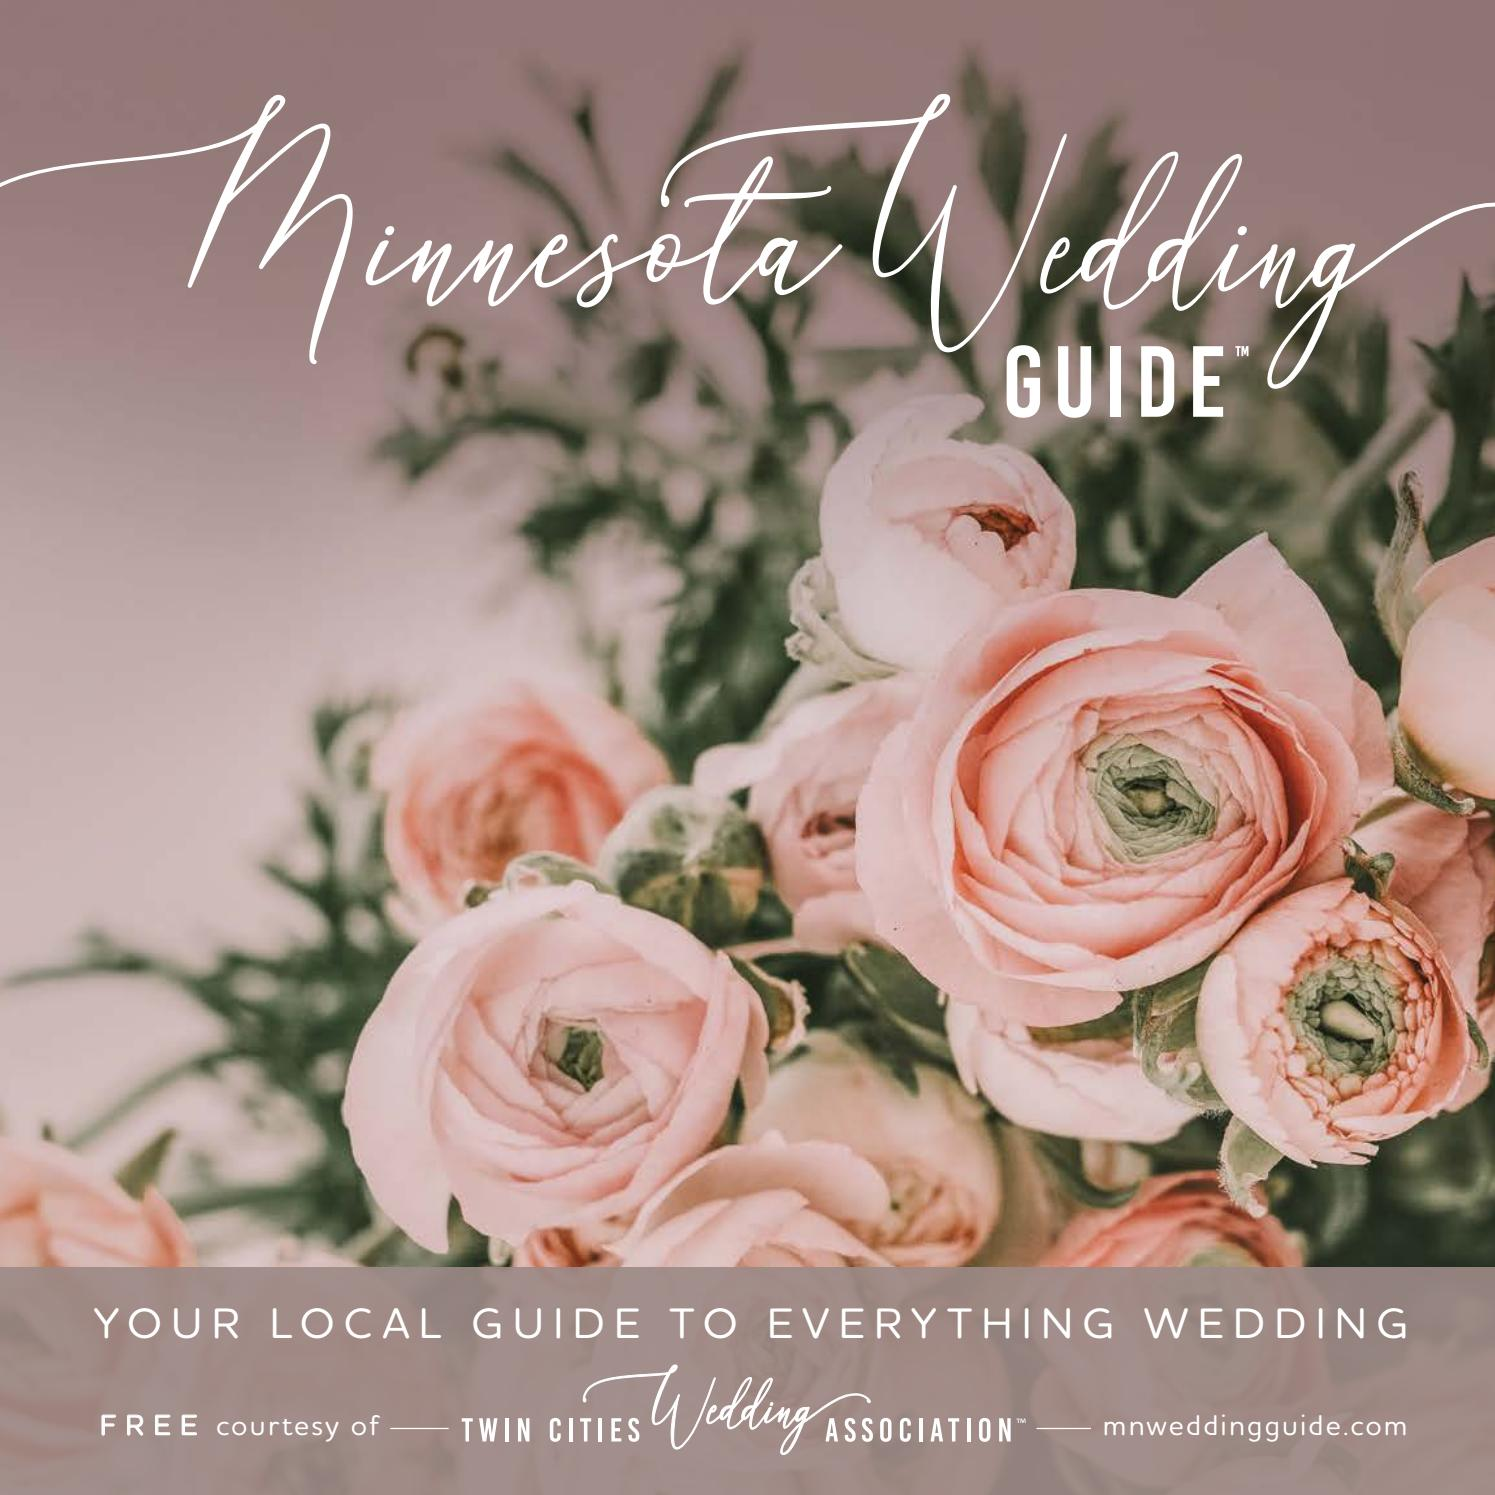 Minnesota Wedding Guide | Spring/Summer 2019 by Minnesota ...